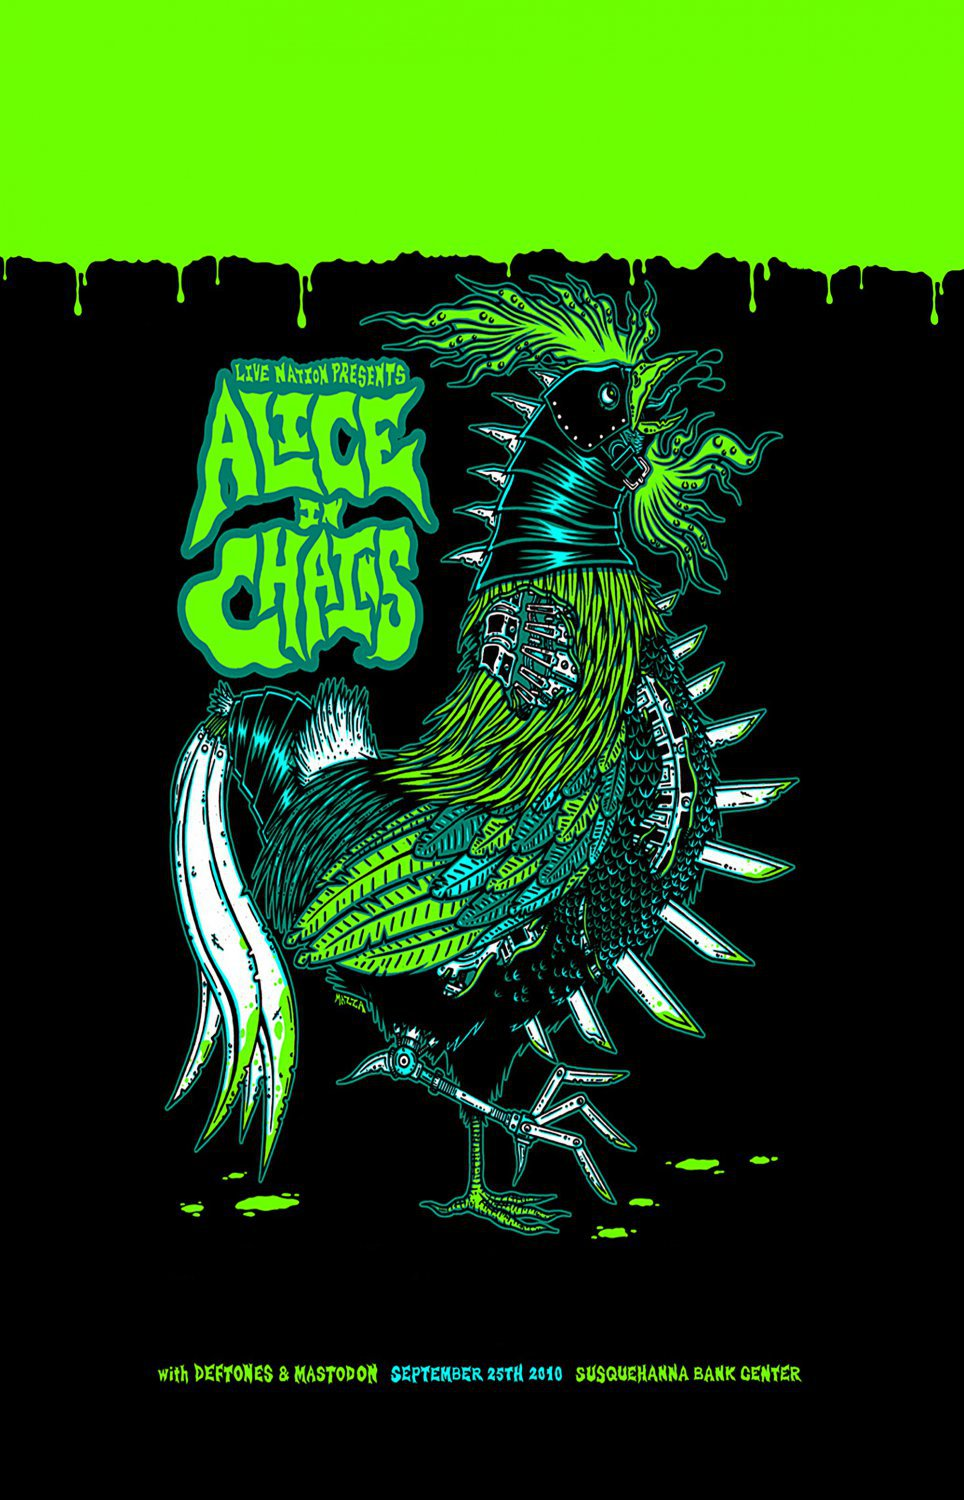 Alice in Chains Concert Tour  18x28 inches Poster Print